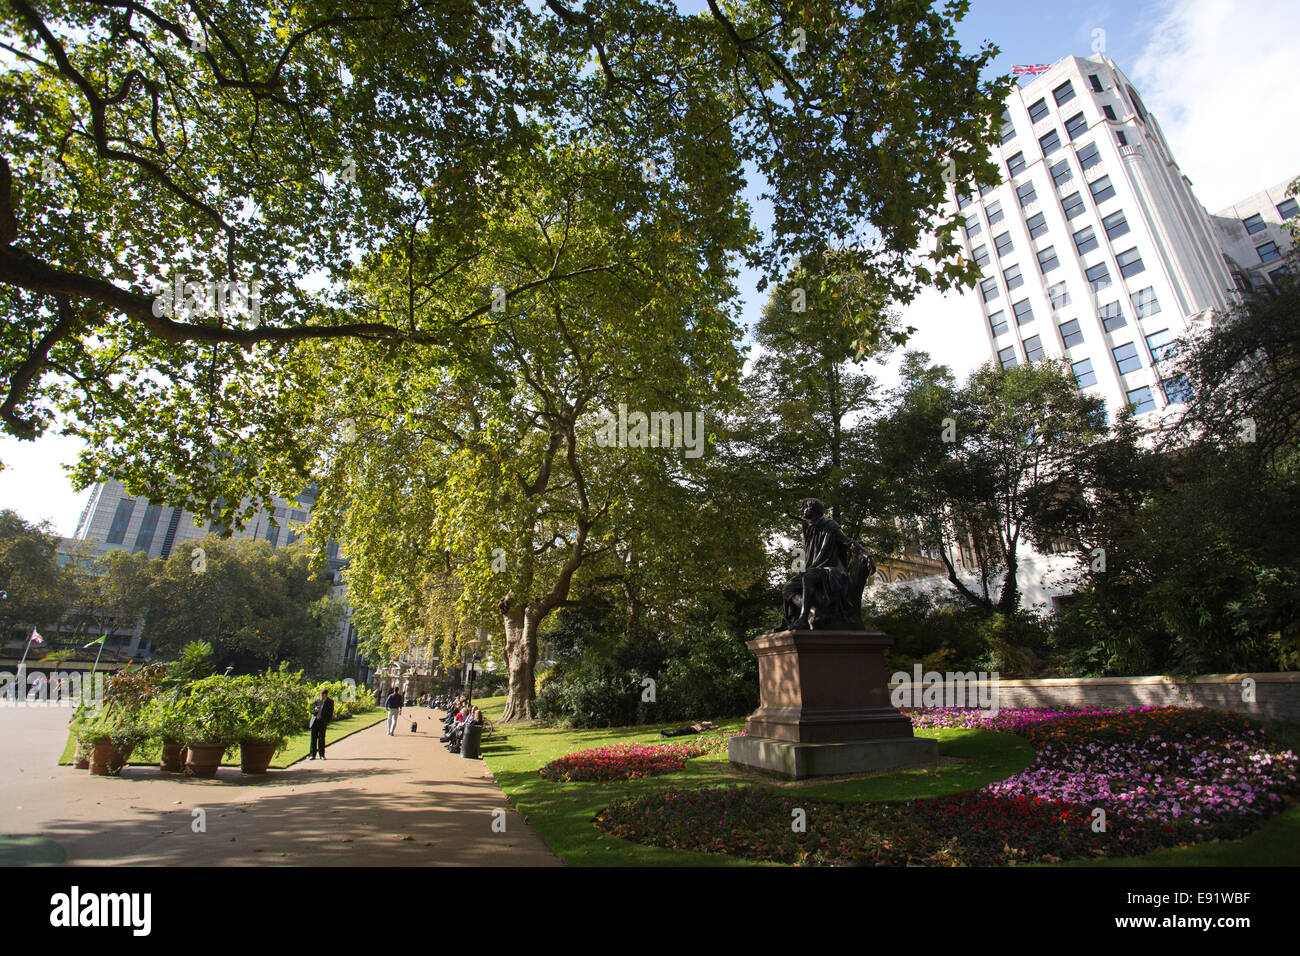 Victoria Embankment Gardens, series of gardens north side of River Thames, London, England, UK - Stock Image